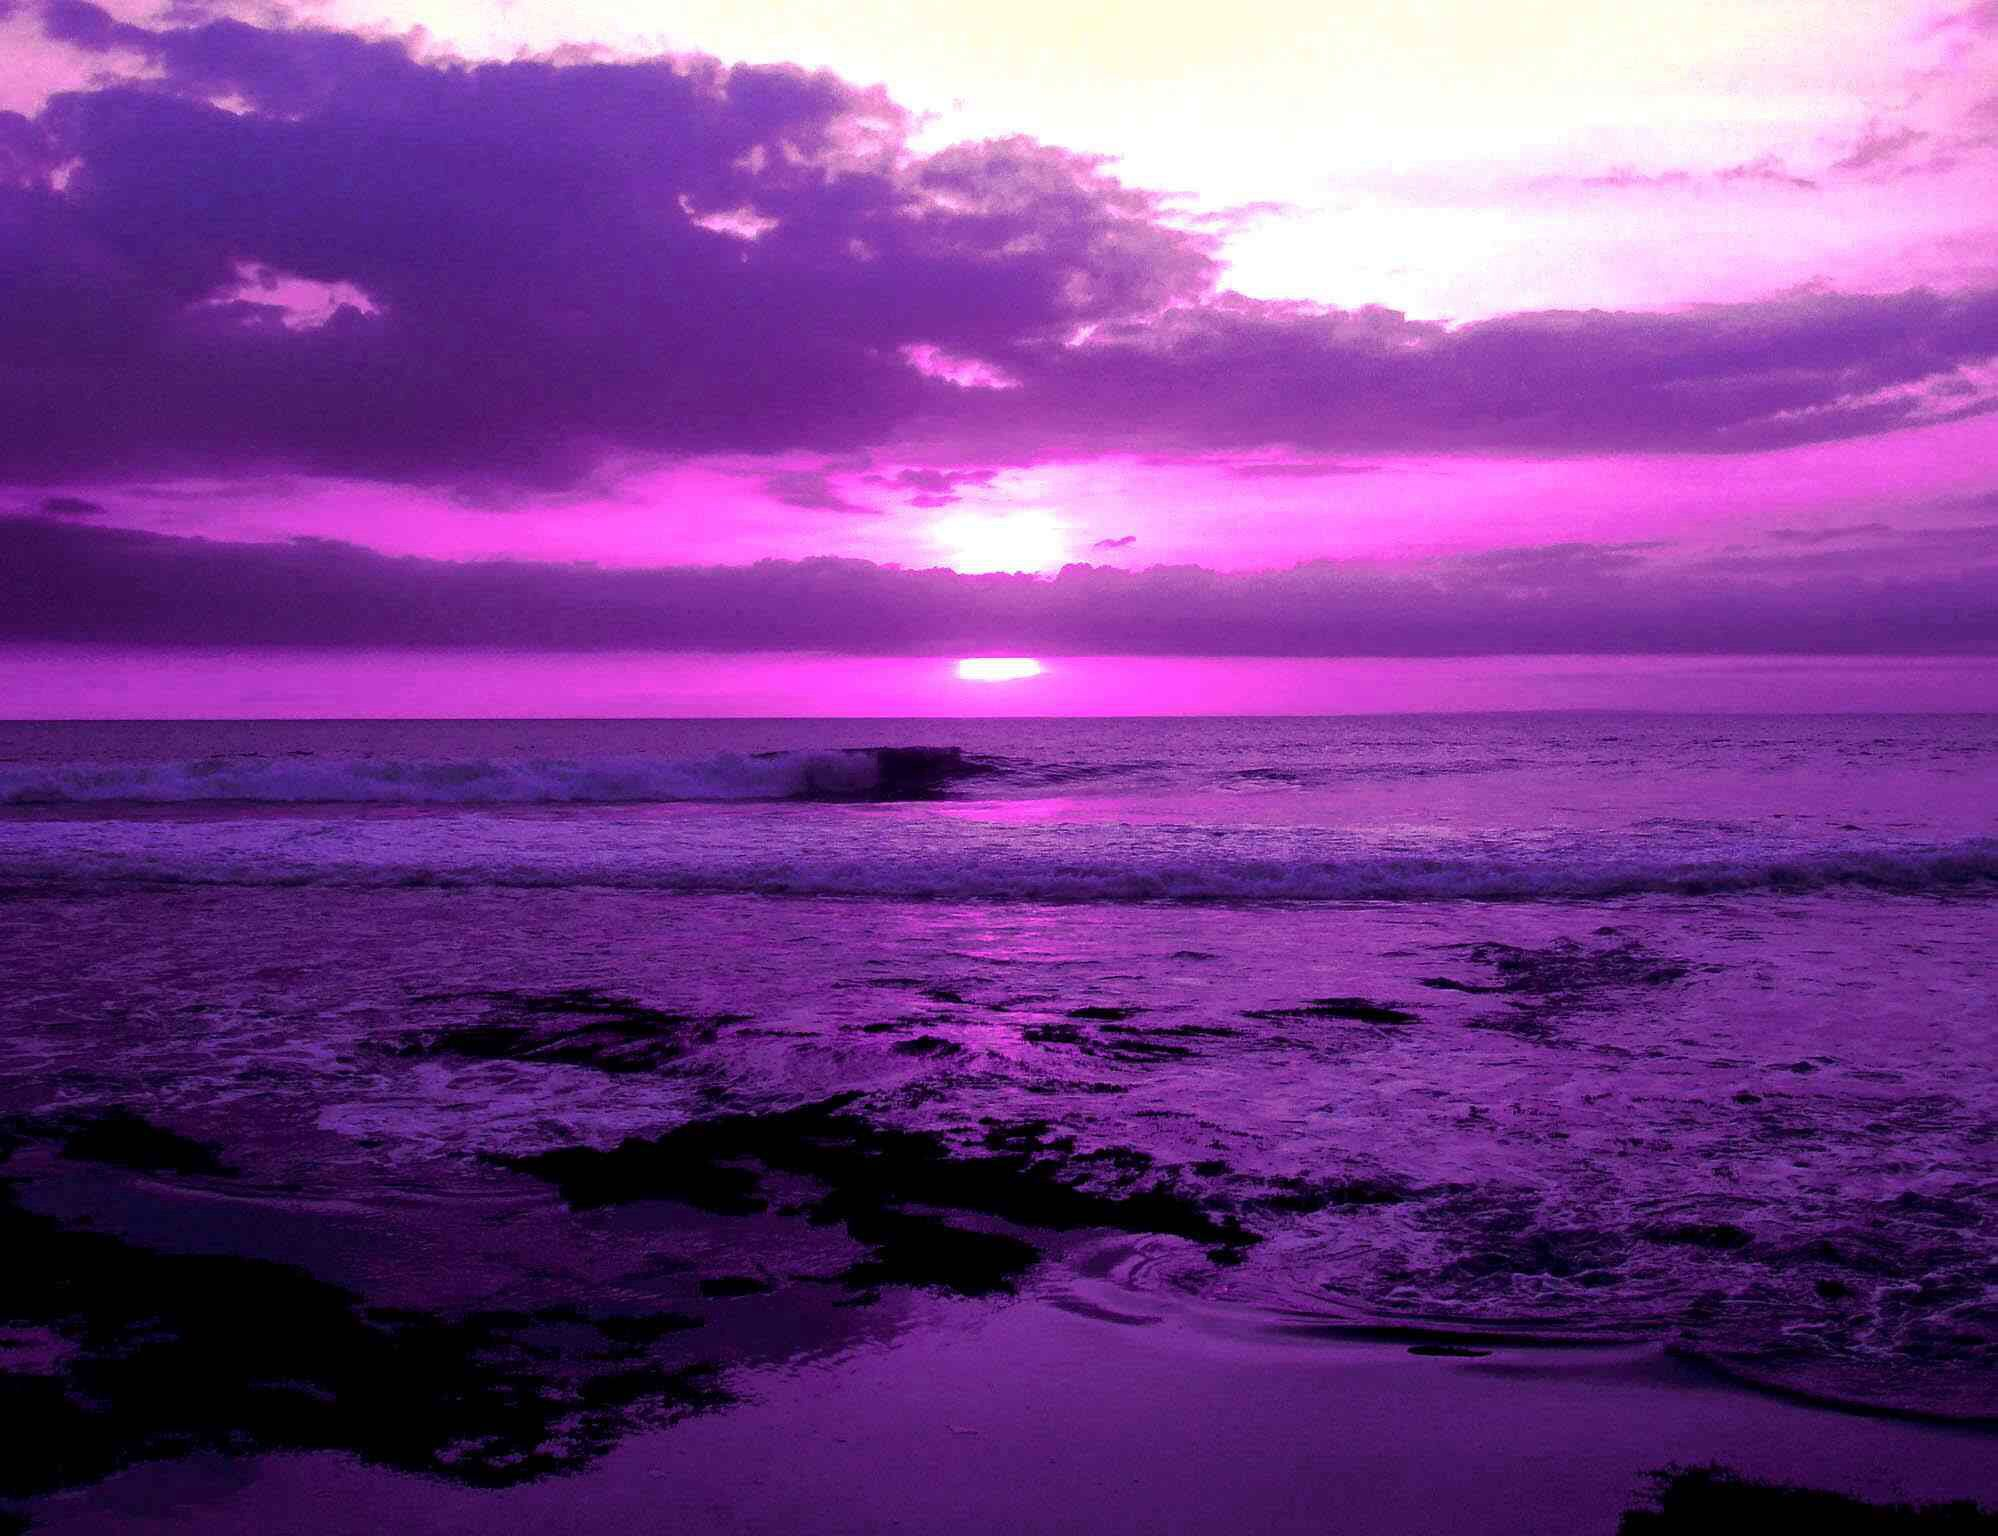 essays on the color purple cause effect essay oemy images about purple sunrise and sunset on essays on the color purple cause effect essay